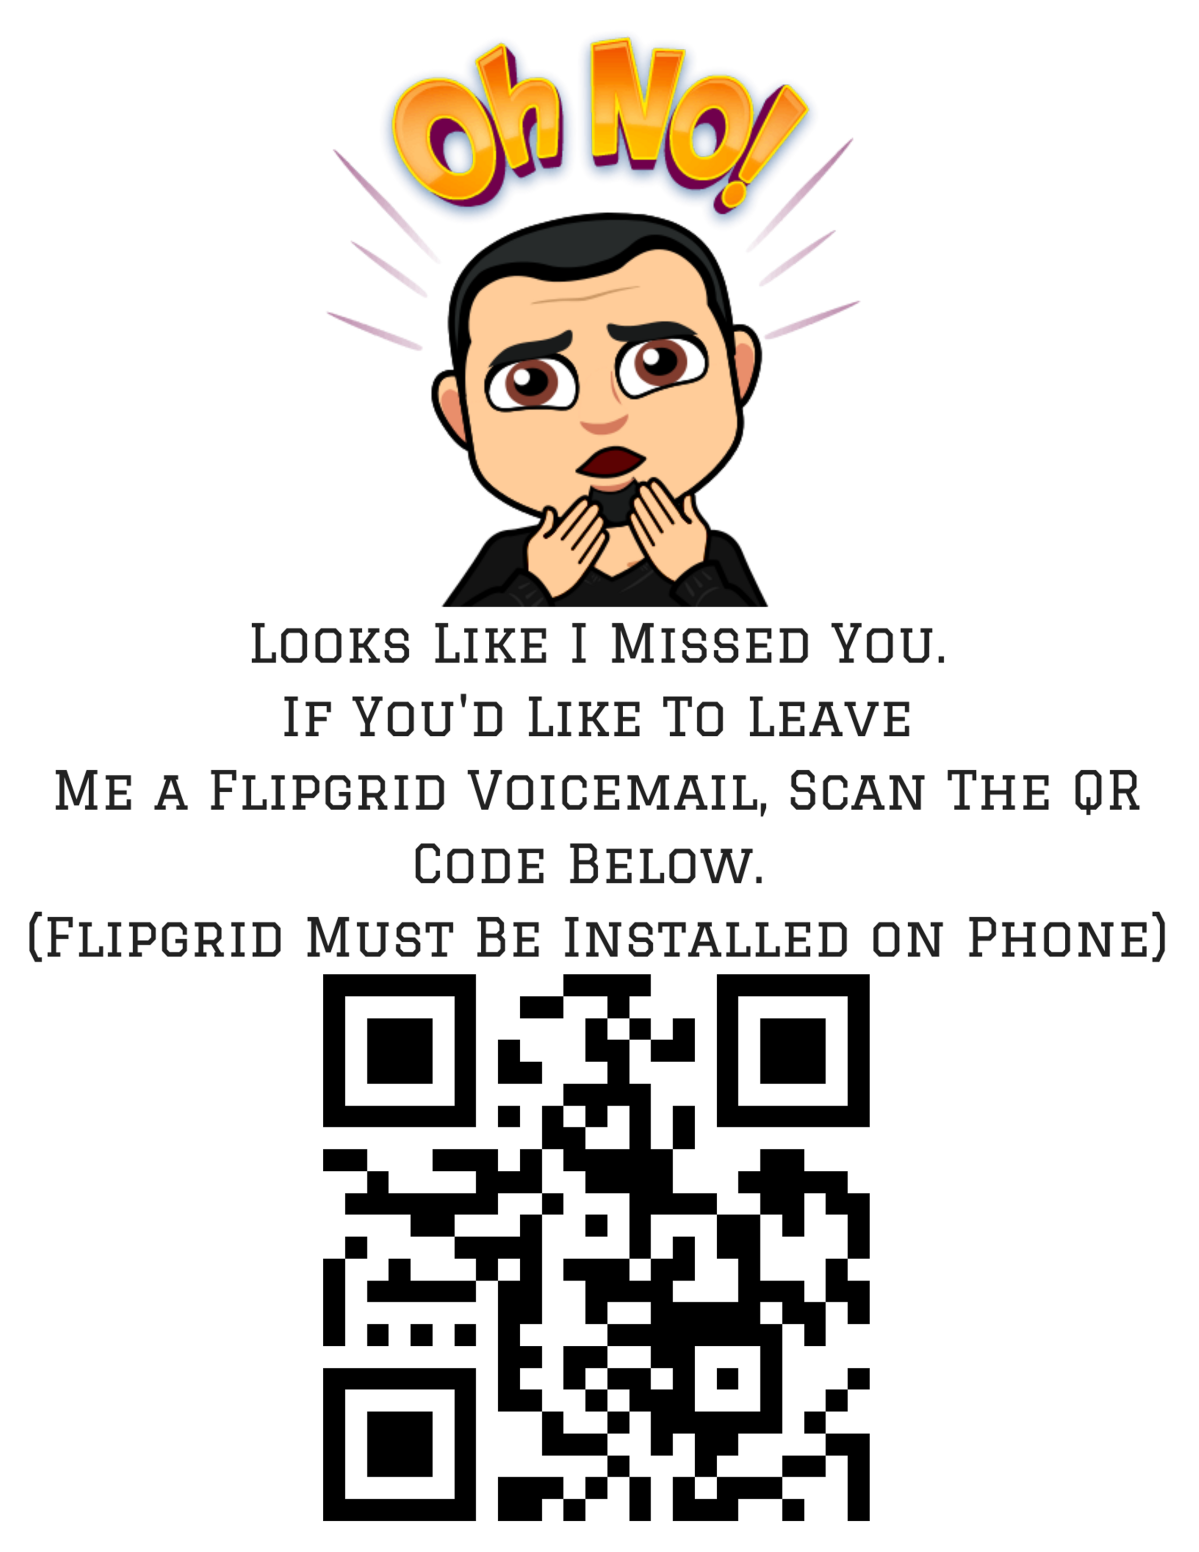 Flipgrid Out Of Office Voicemail